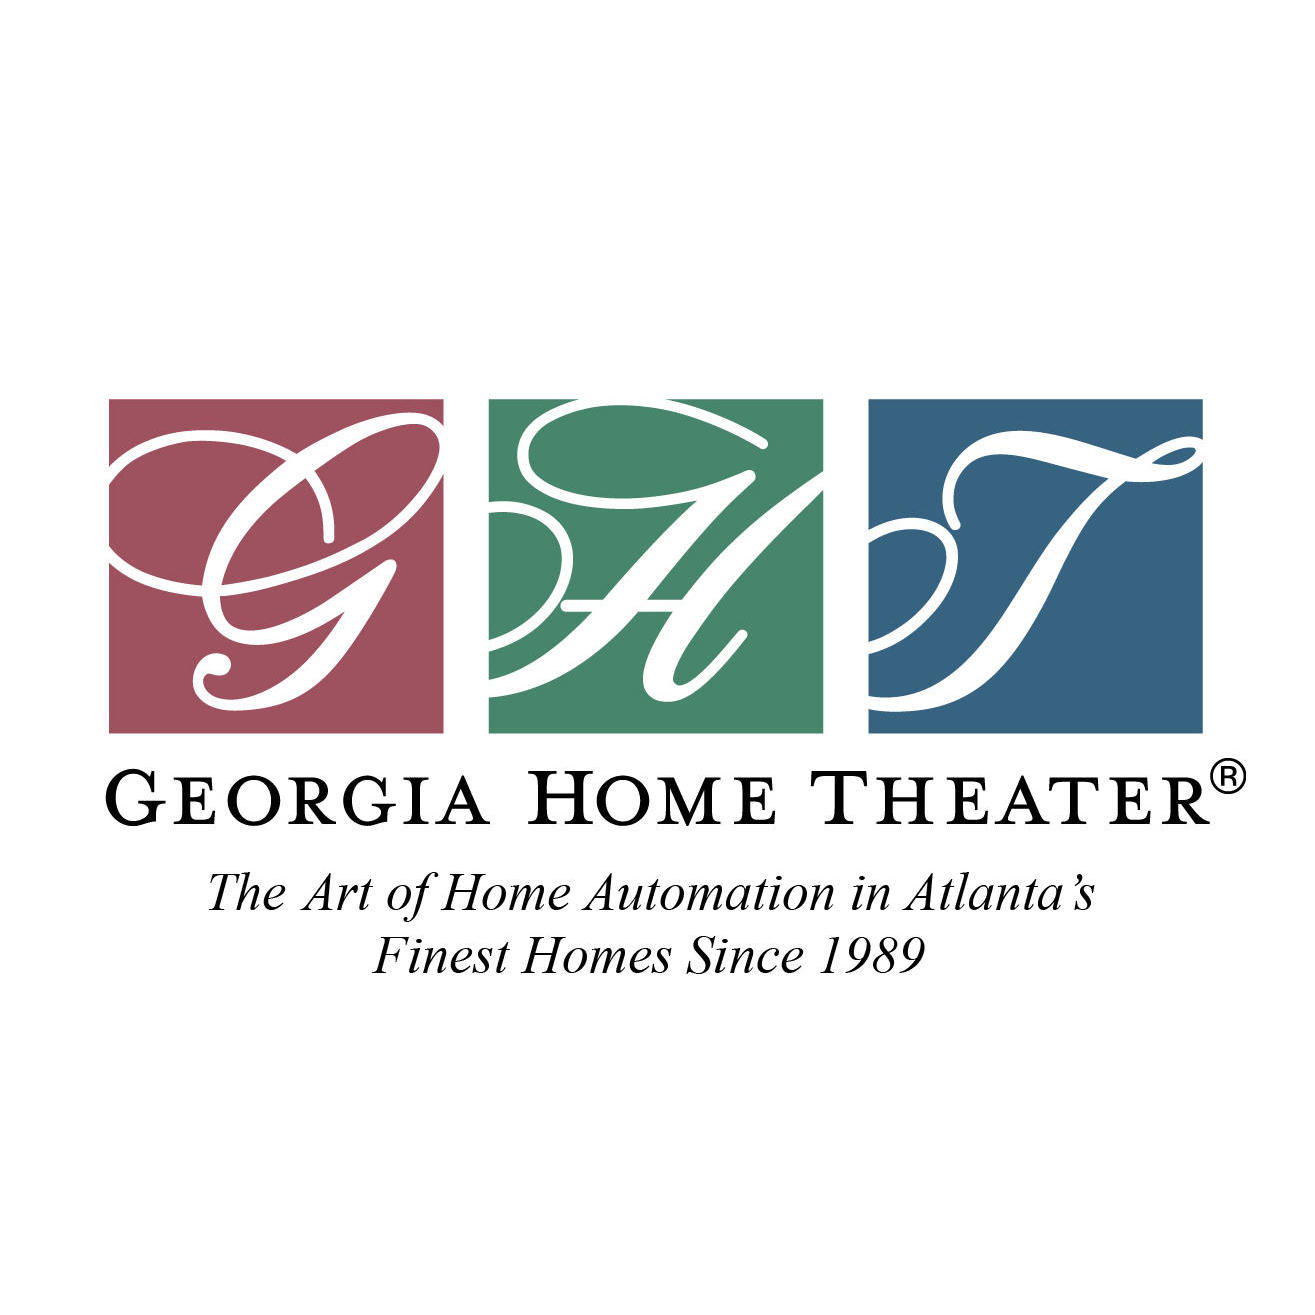 Georgia Home Theater